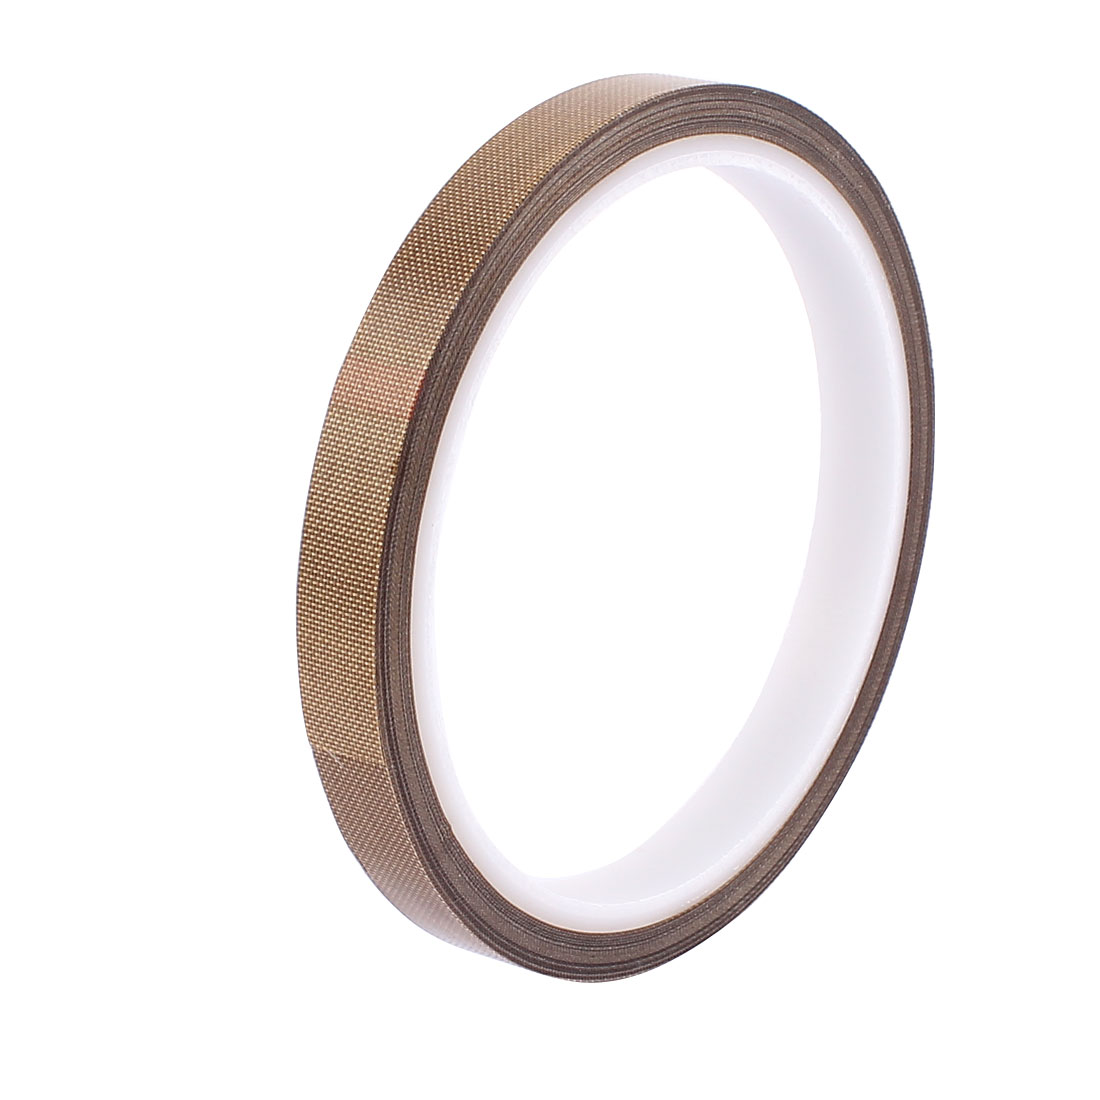 0.18mm x 8mm Nonstick High Temperature PTFE Adhesive Tape 10M Long